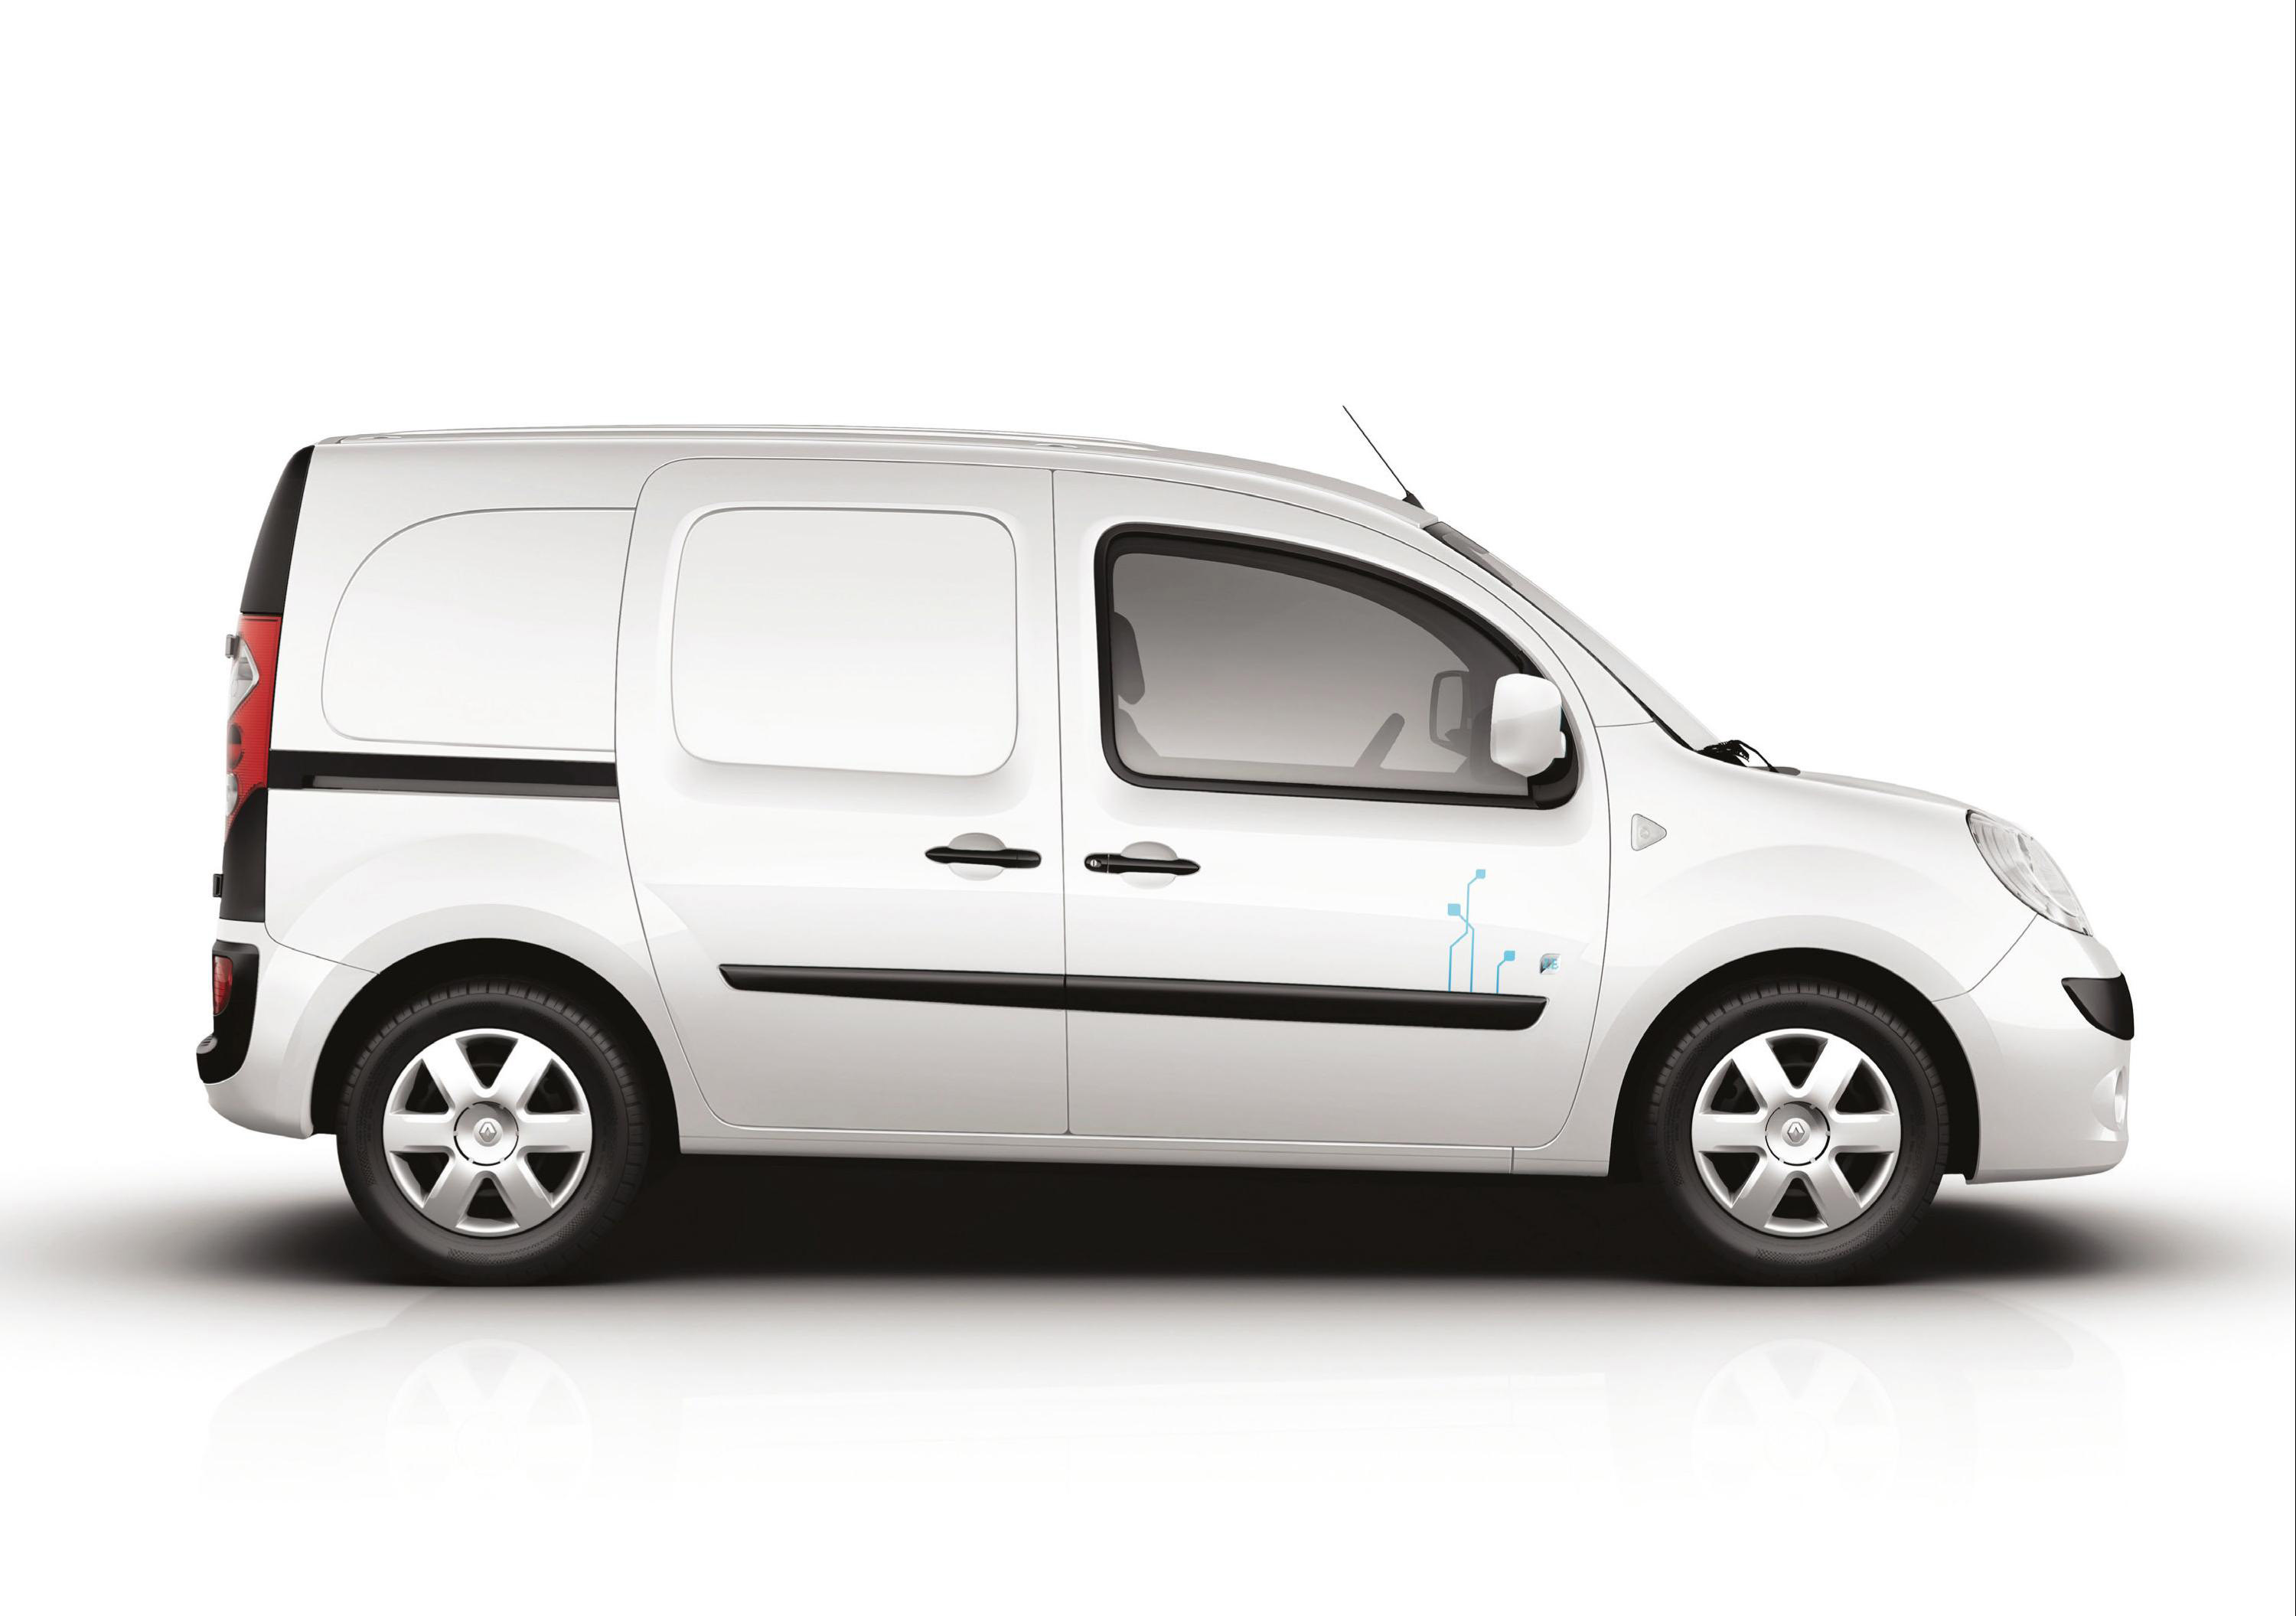 2012 renault kangoo van z e price 16 990. Black Bedroom Furniture Sets. Home Design Ideas